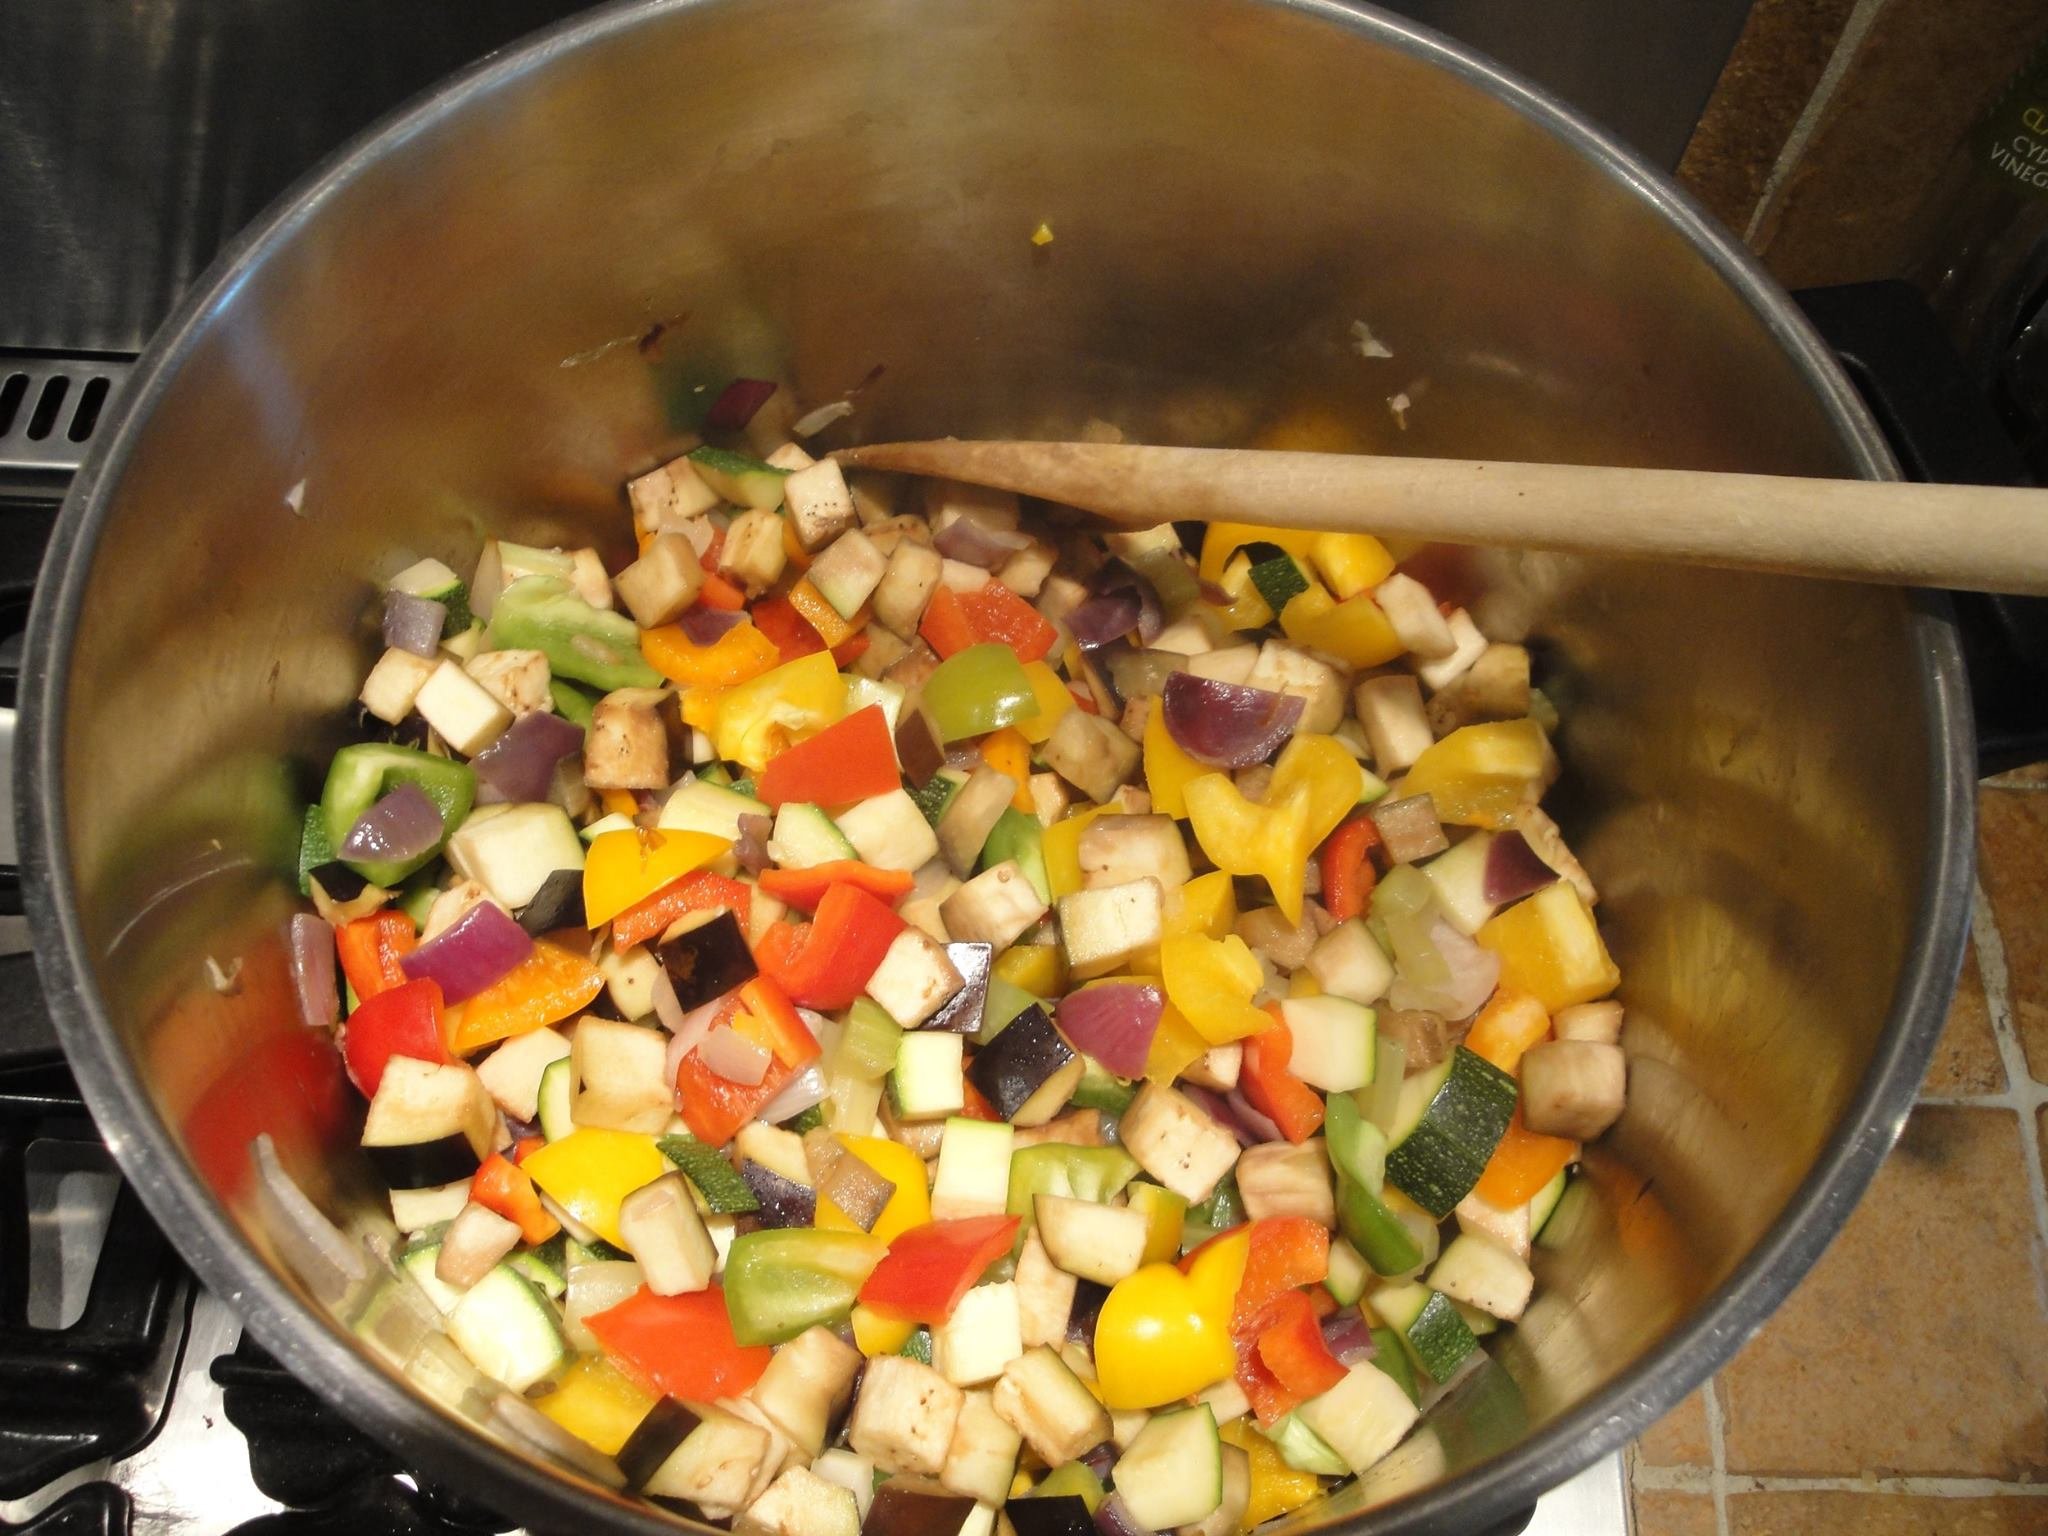 Batch of Ratatouille - no real rats!